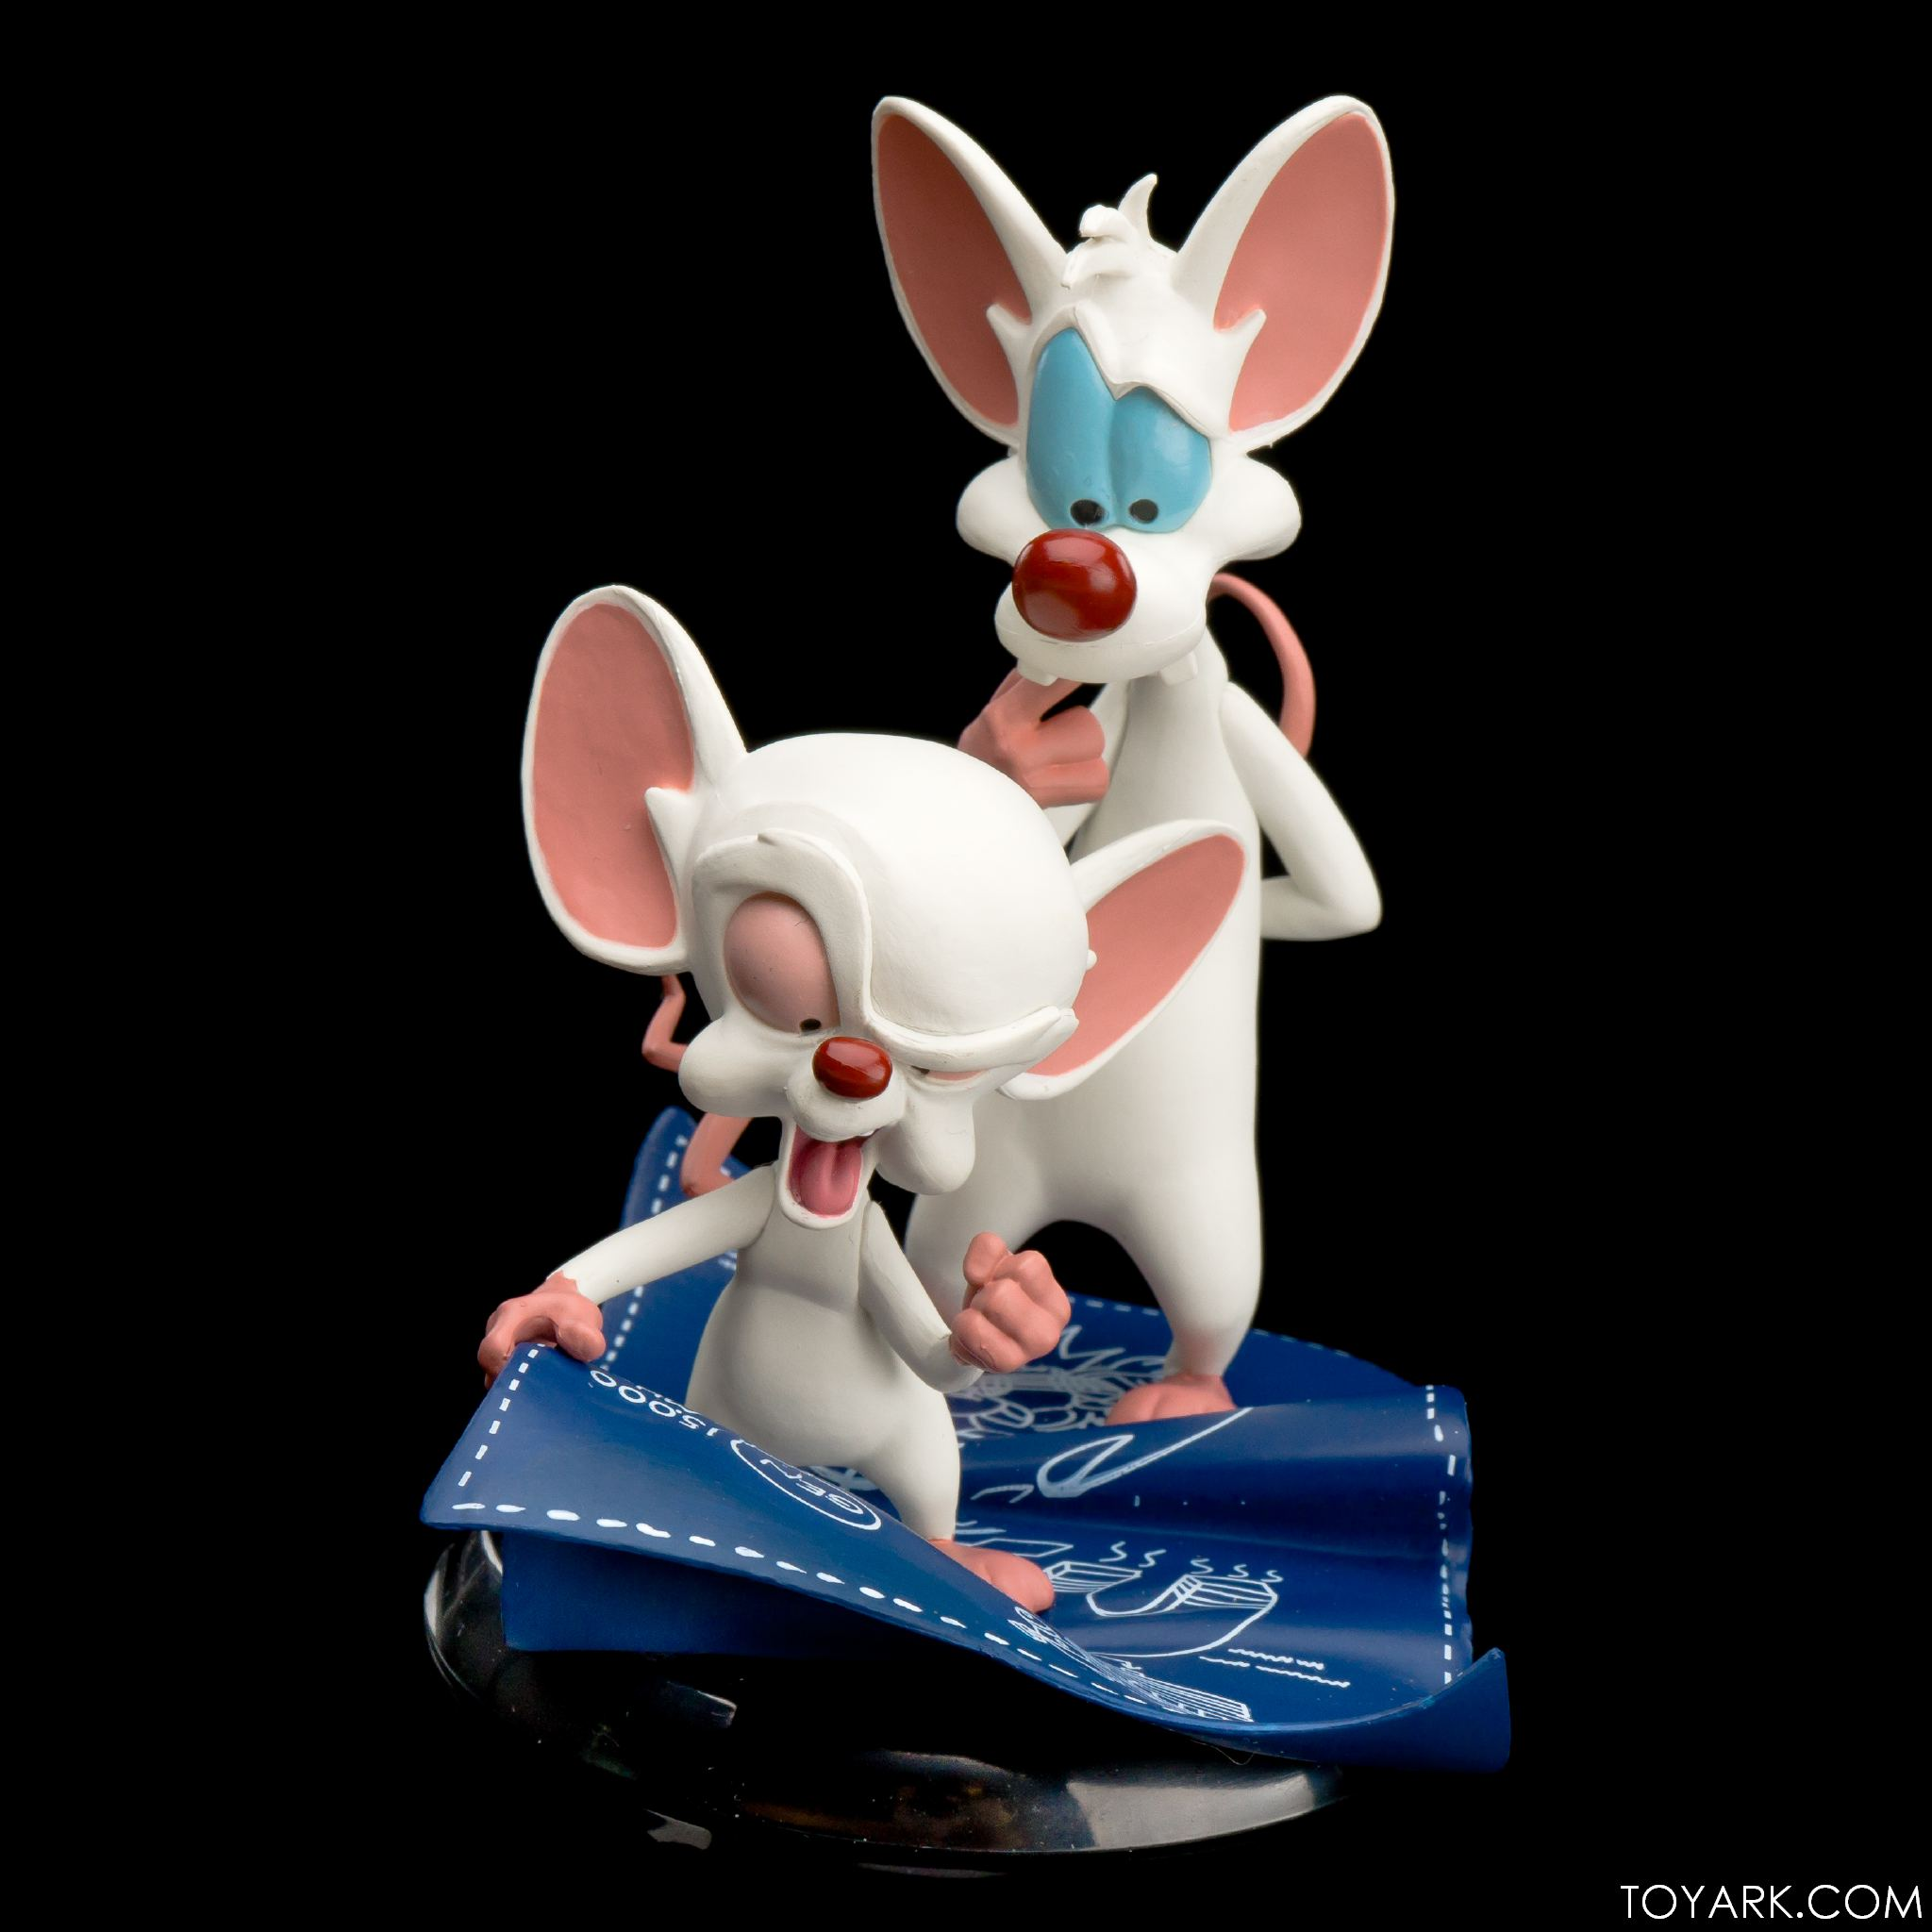 Qmx pinky and the brain q fig photo review the toyark news qmx pinky brain 01 thecheapjerseys Images